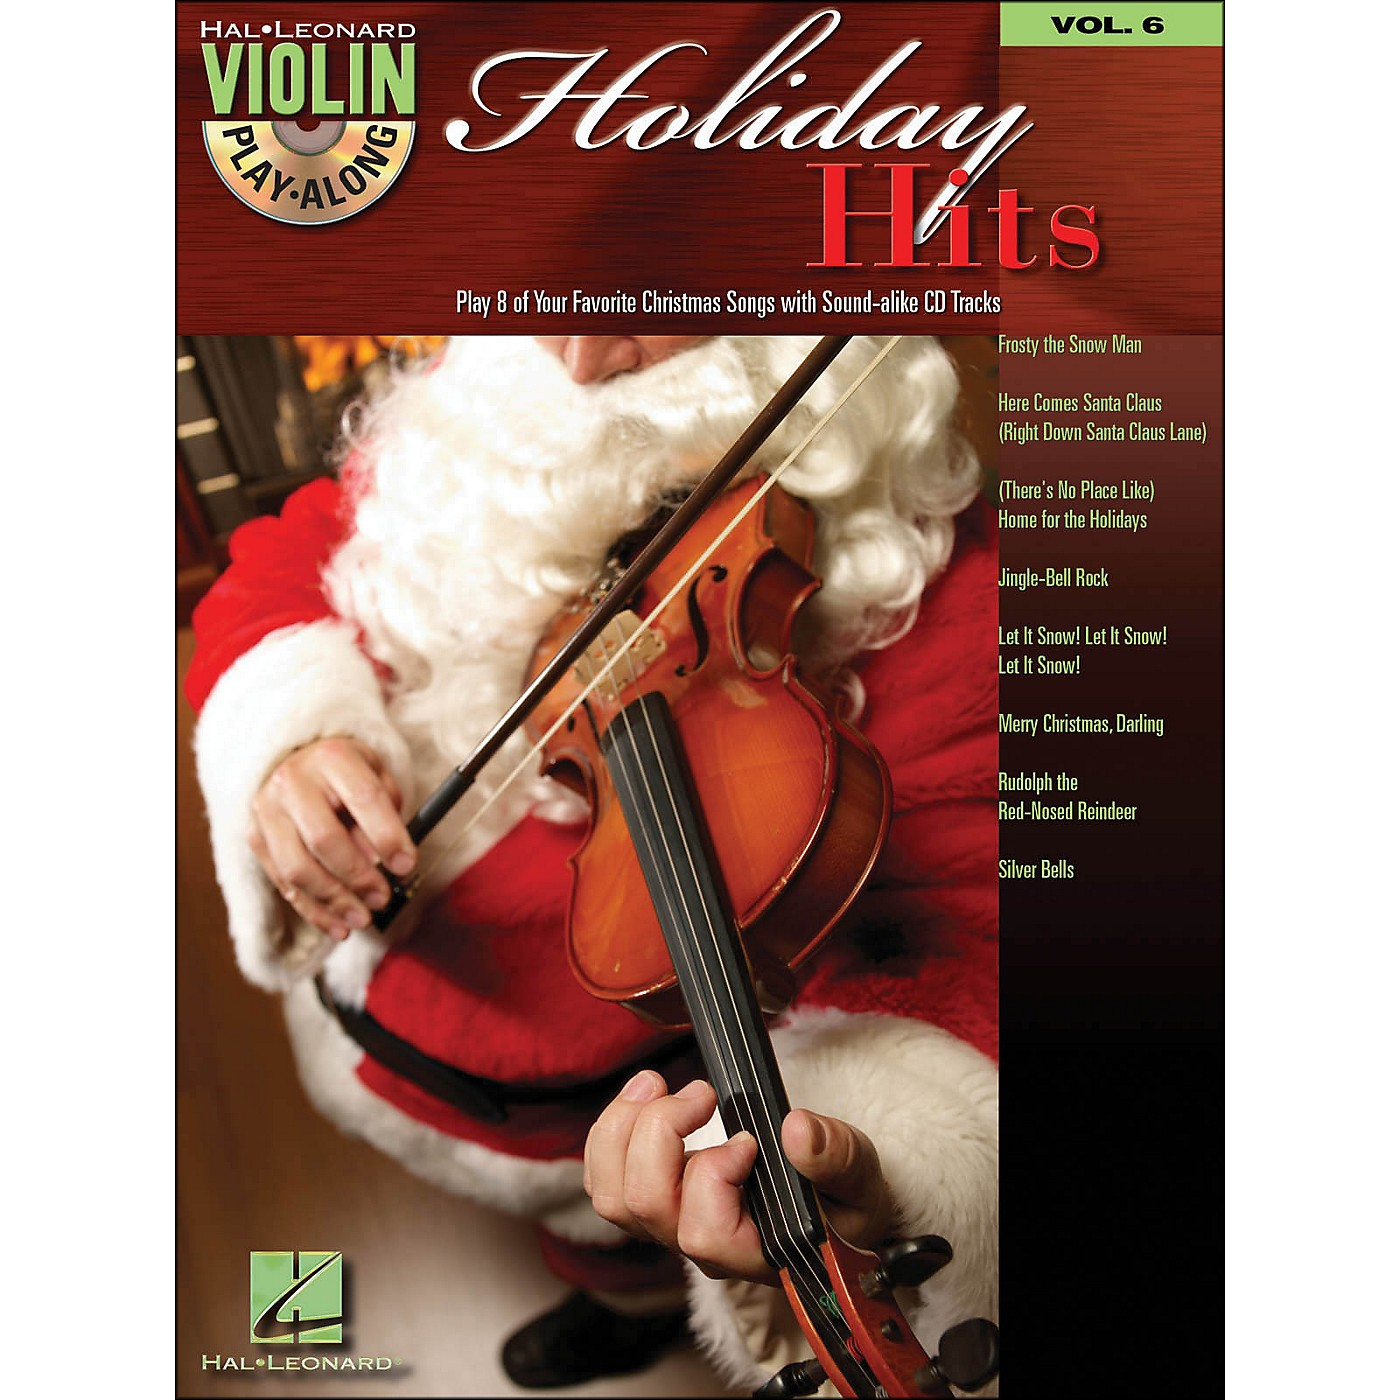 Hal Leonard Holiday Hits Violin Play-Along Volume 6 Book/CD thumbnail